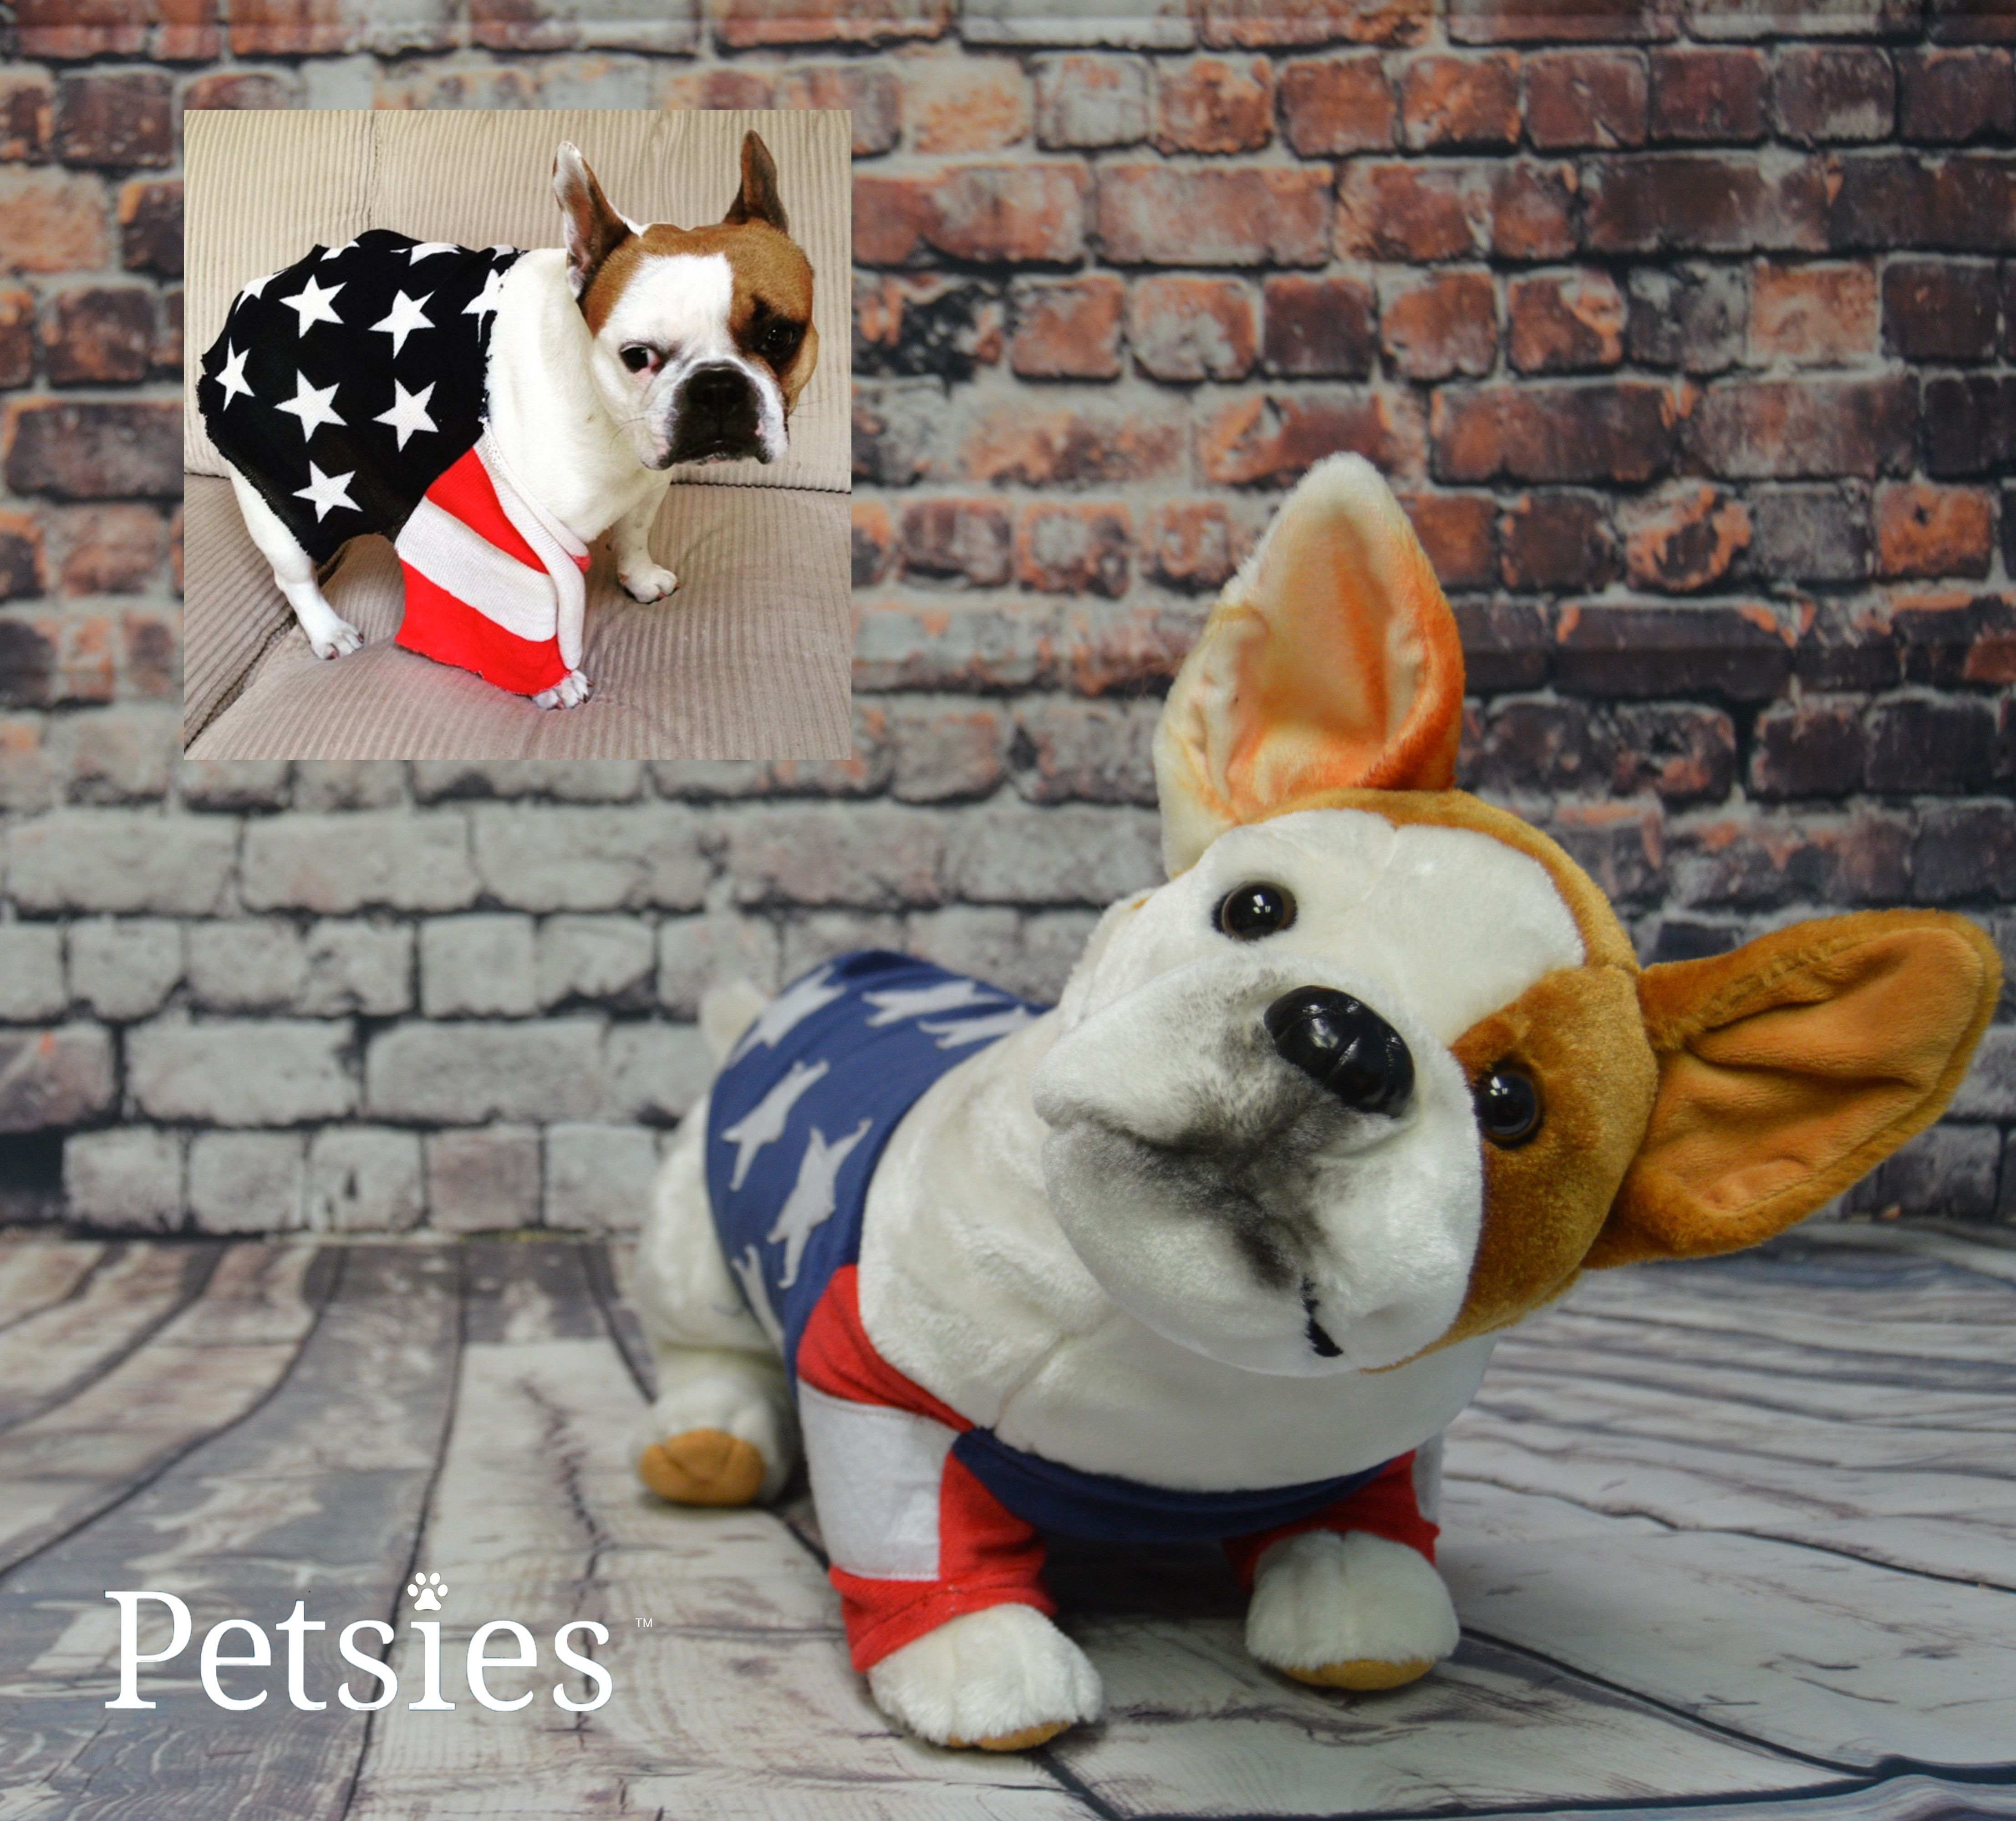 ee8e33ad3c14 Check out Petsies - they make a custom plush lookalike of your pet! Create your  own patriotic pup! budsies.com